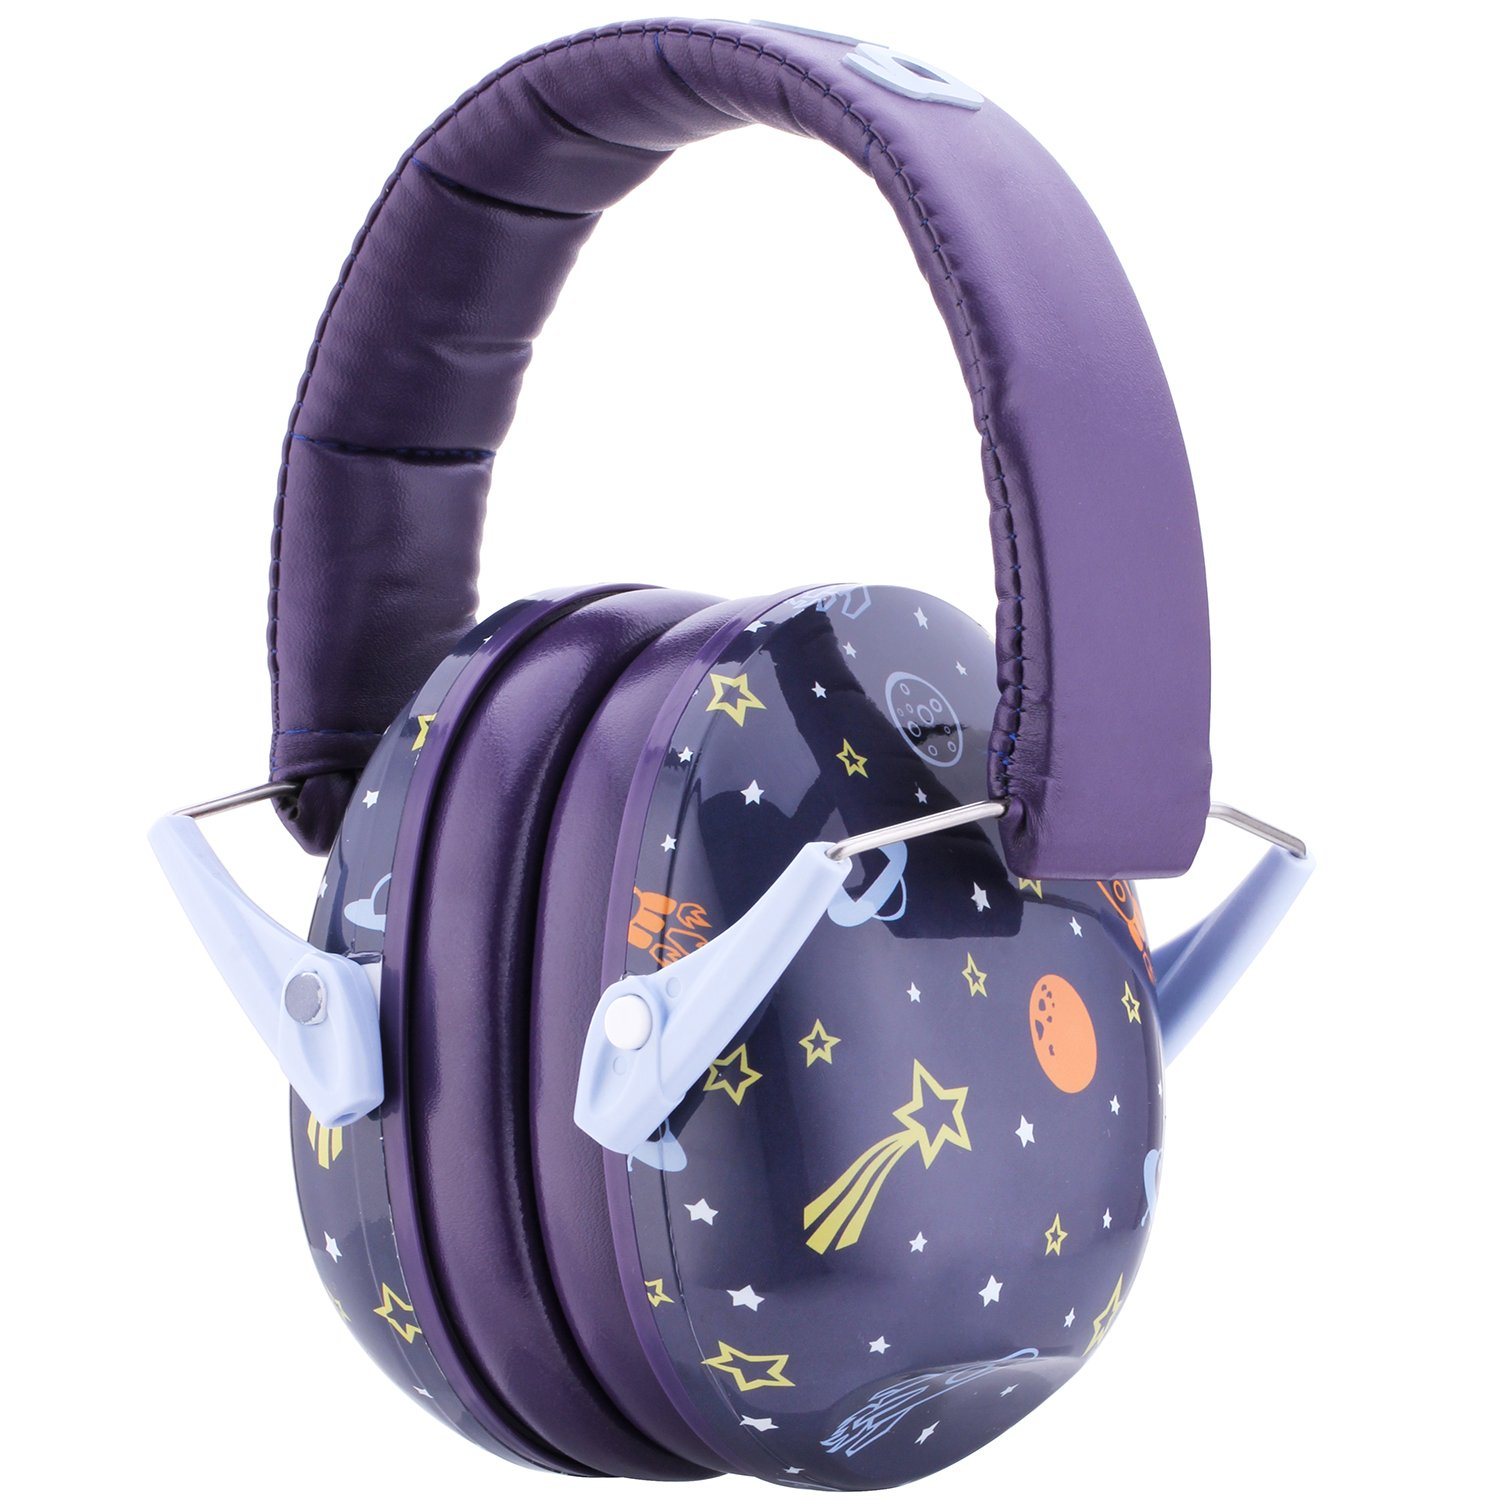 Snug Kids Earmuffs/Best Hearing Protectors - Adjustable Headband Ear Defenders for Children and Adults (Space) by Snug